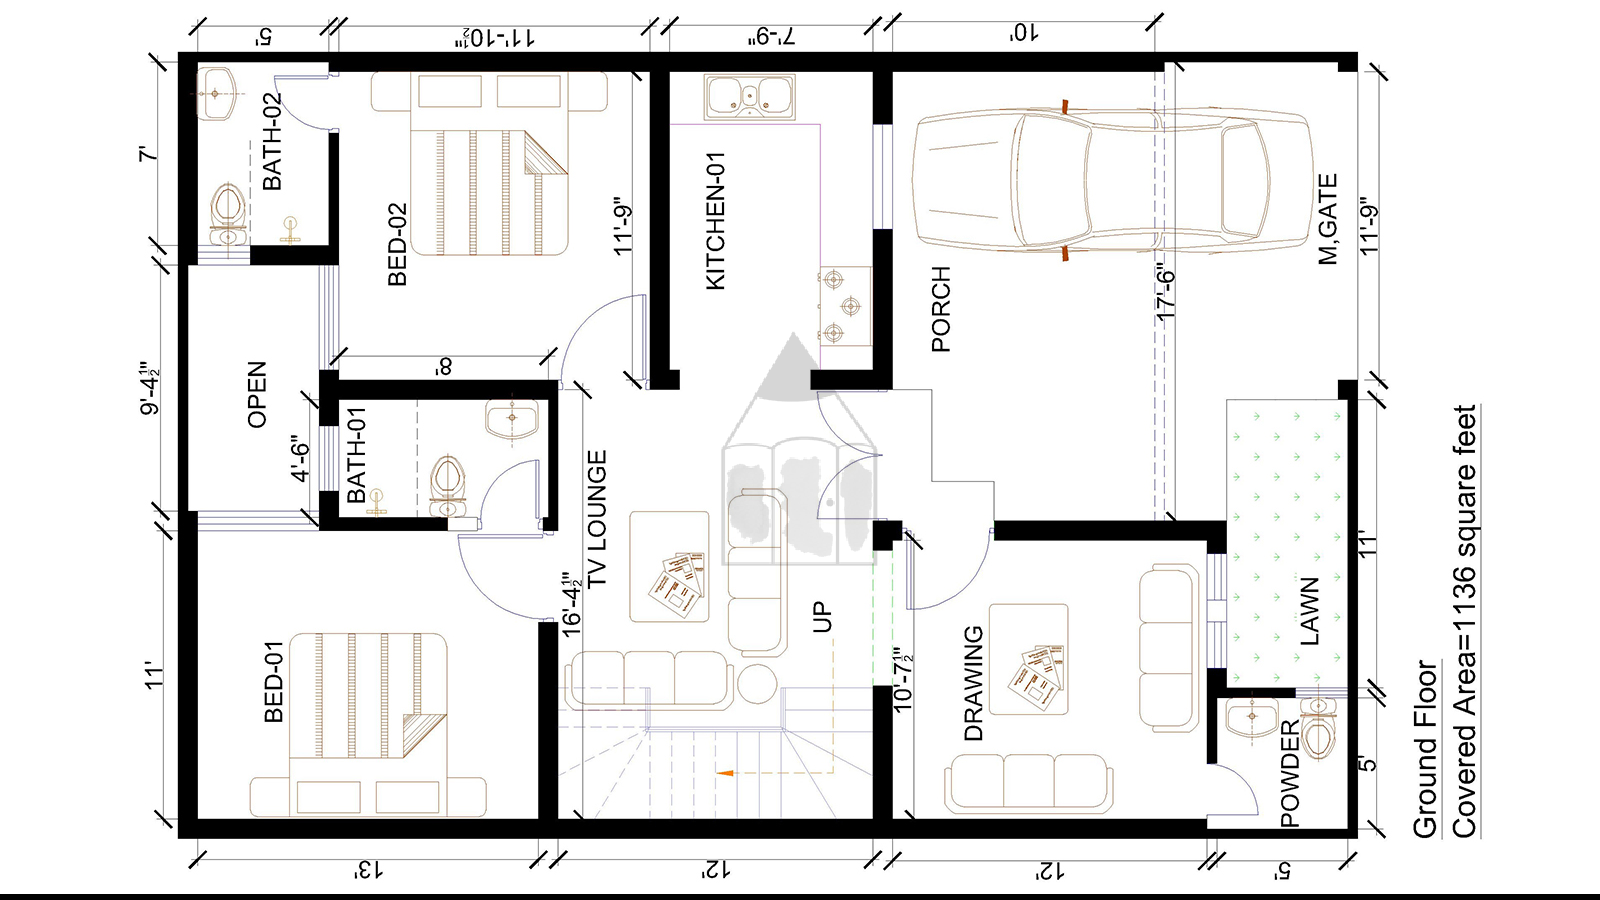 8 marla house layout plan for more layout plans visit 35x60 house plans